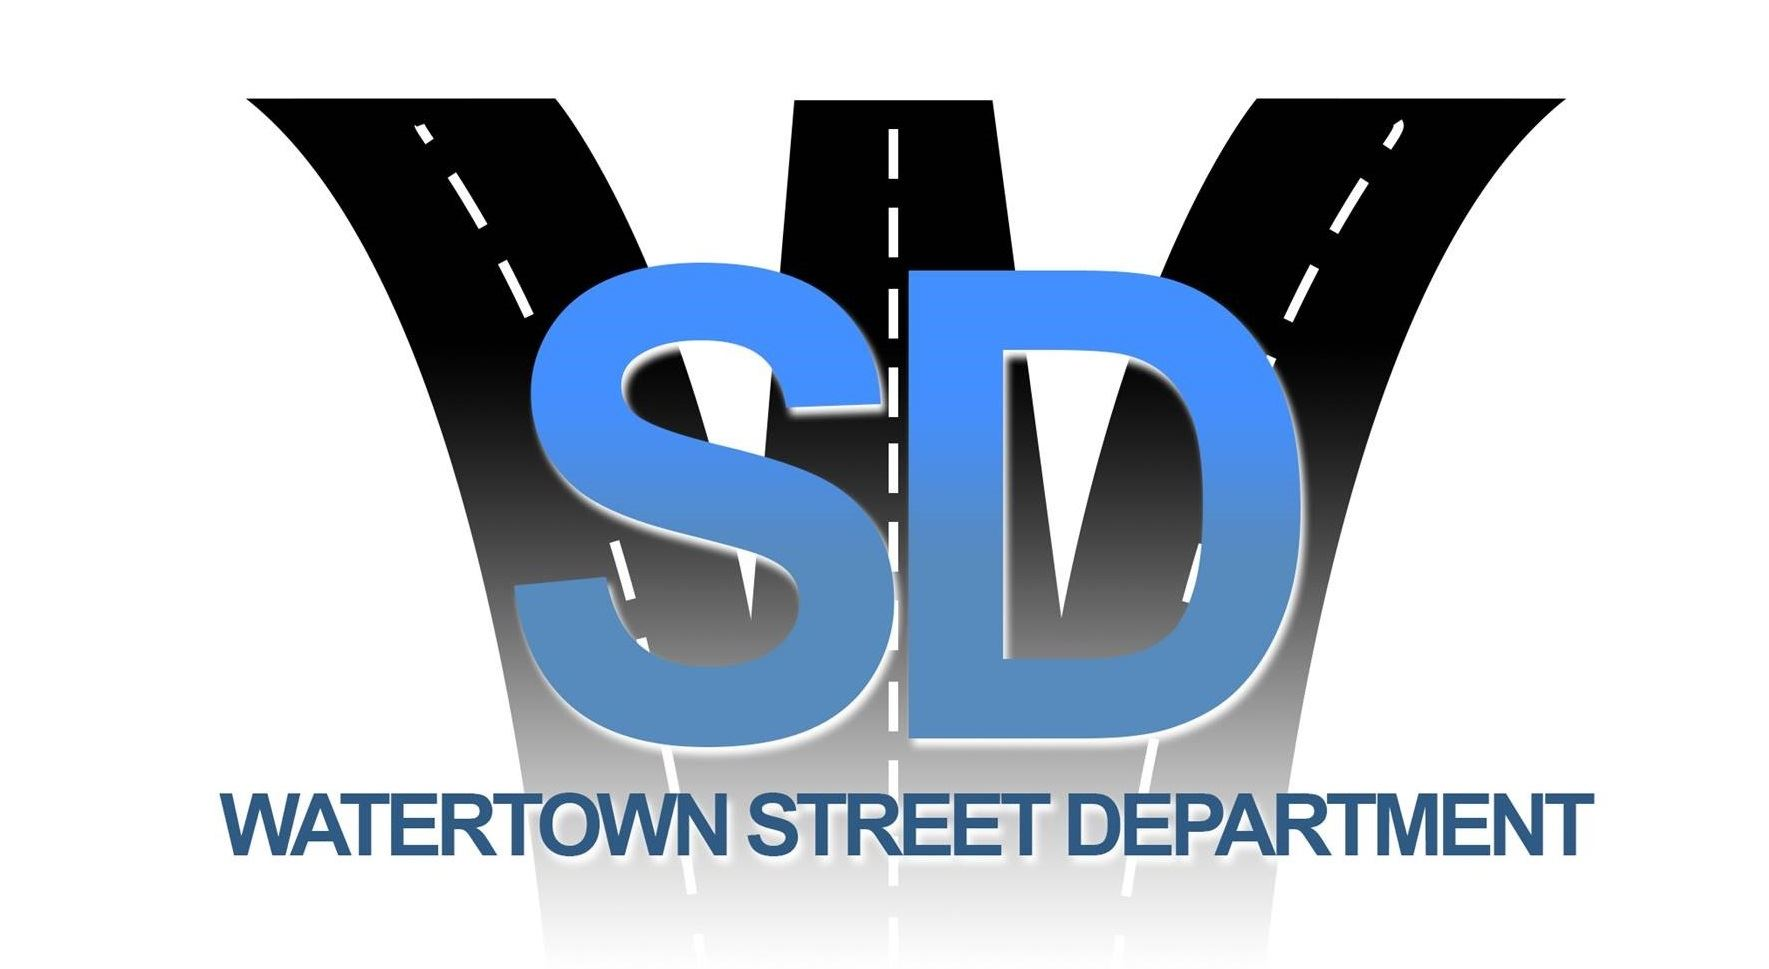 Watertown Street Department